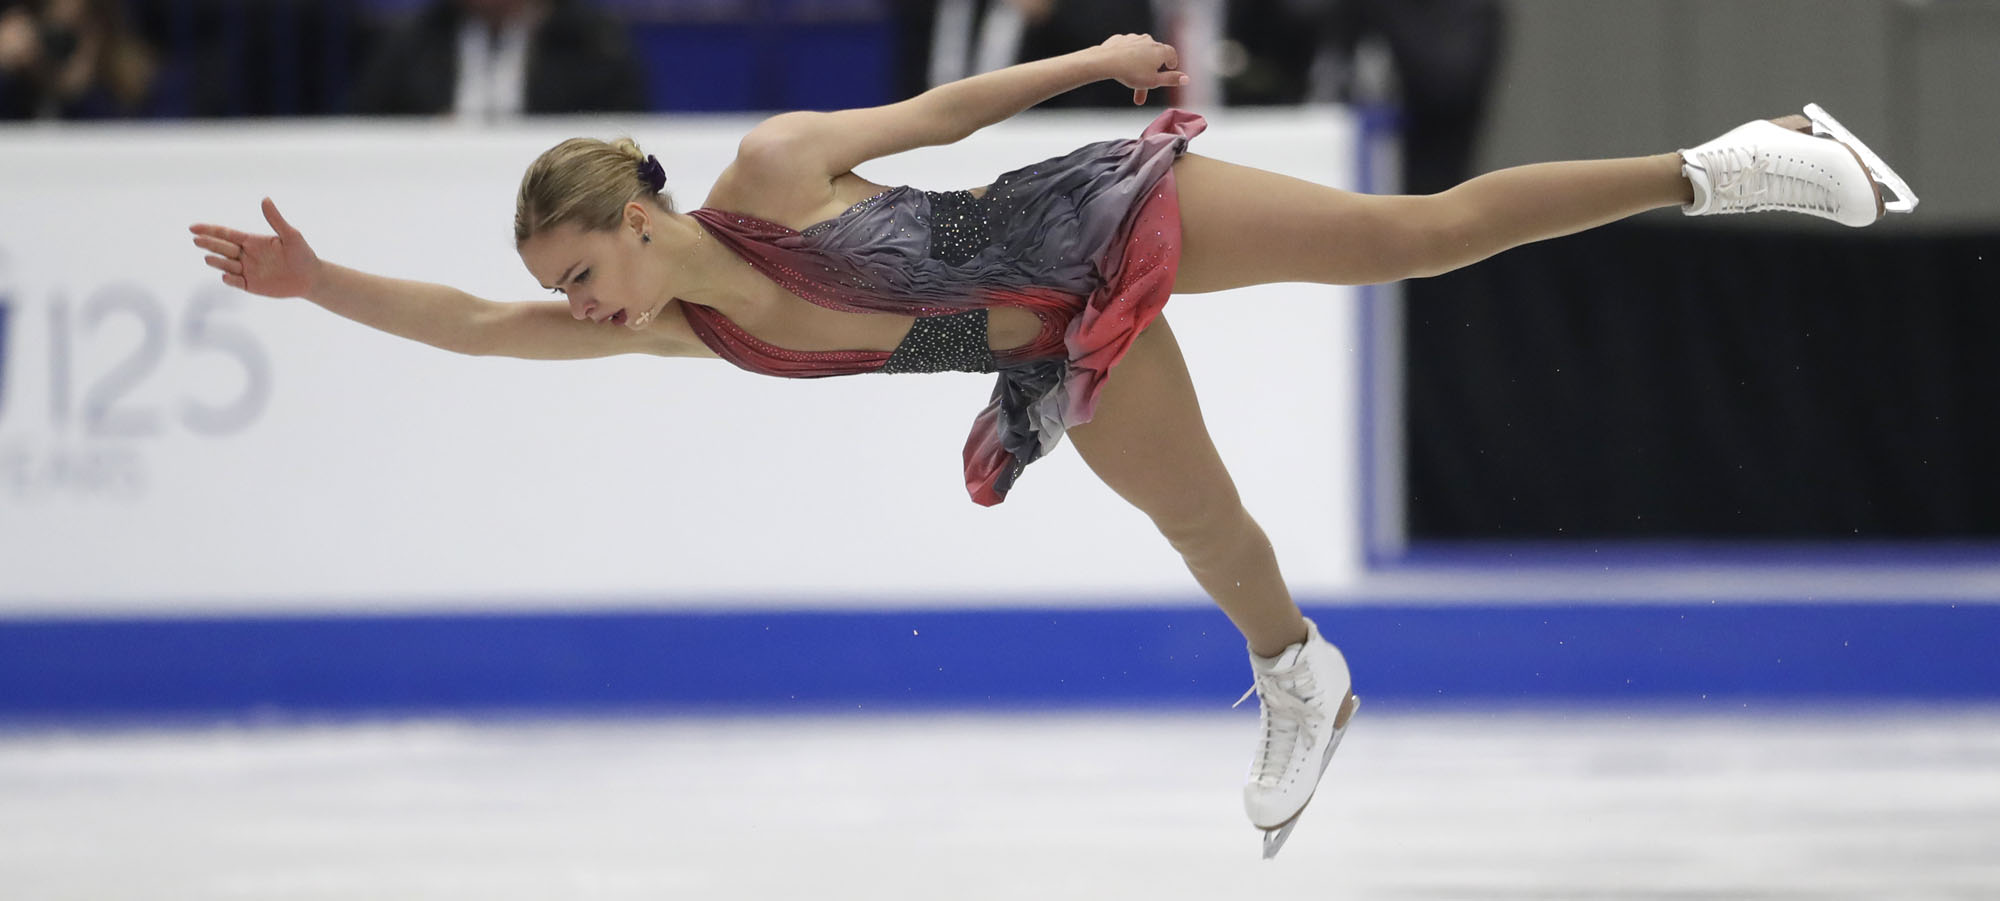 European Figure Skating Championships